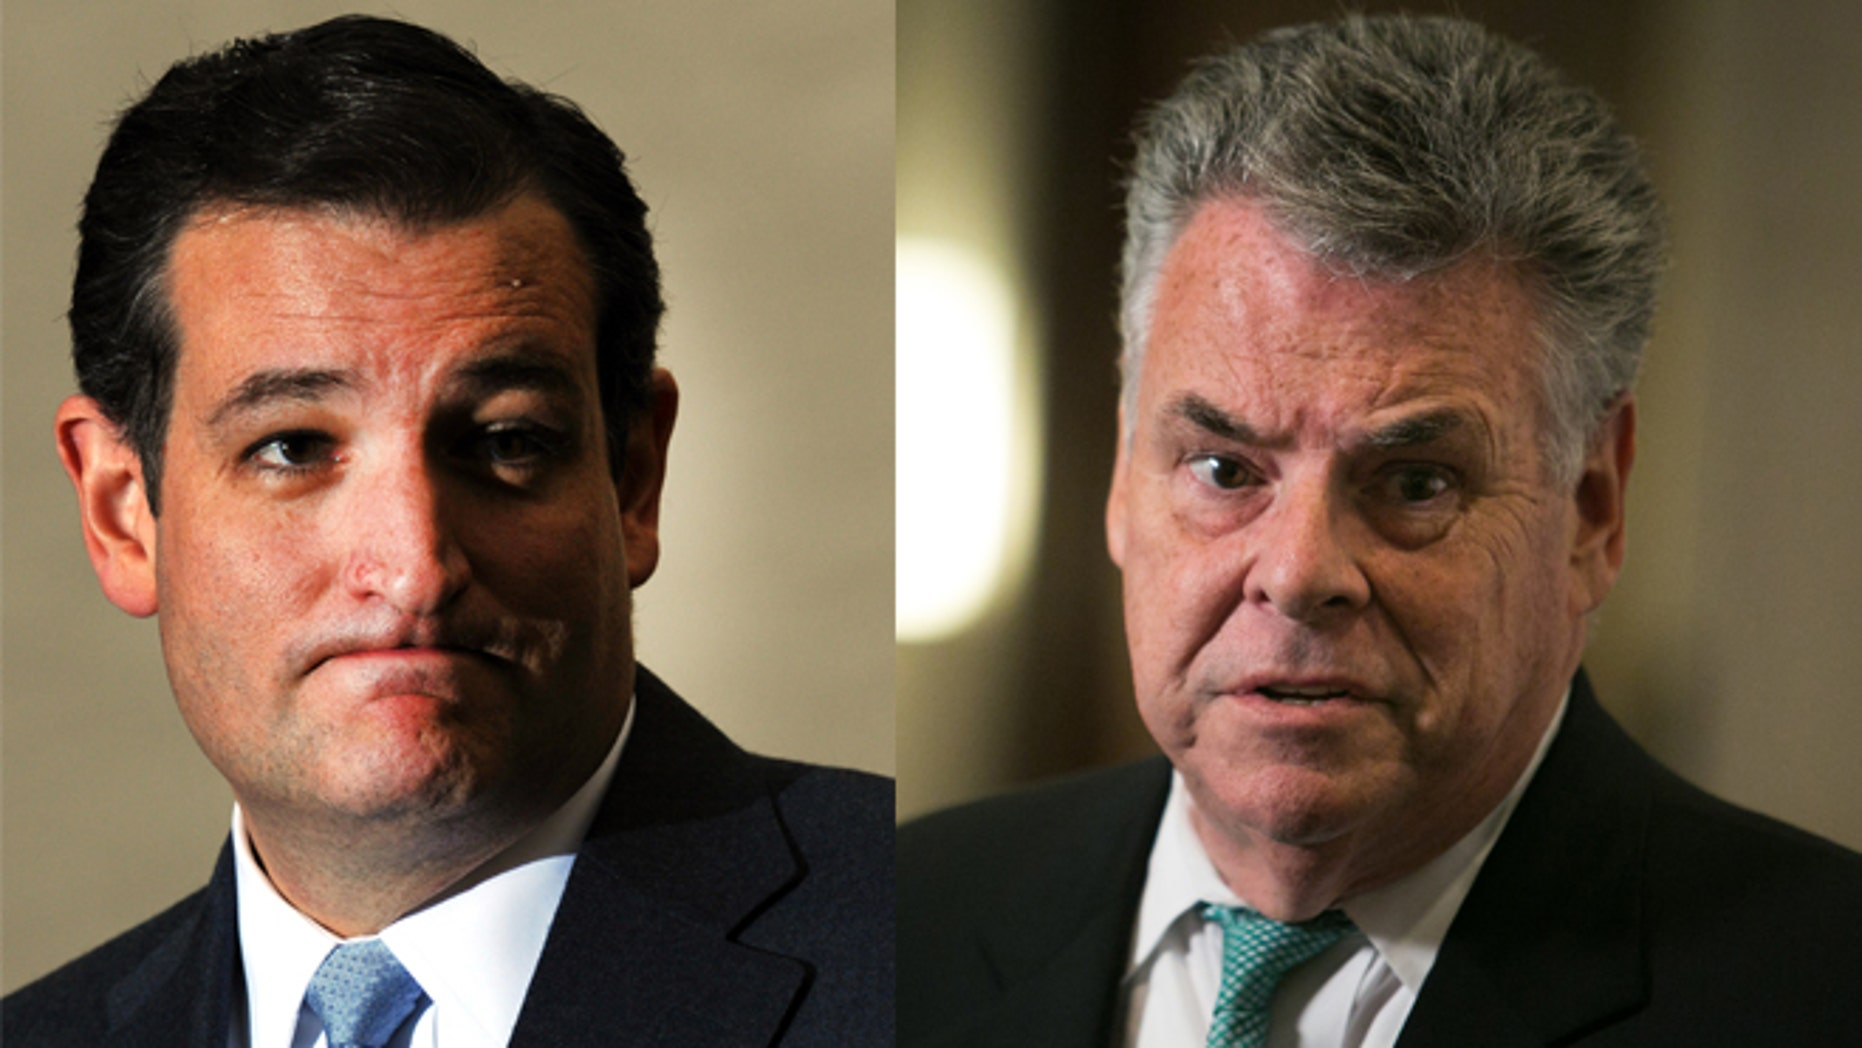 Ted Cruz (R-Texas) and Peter King (R-NY)